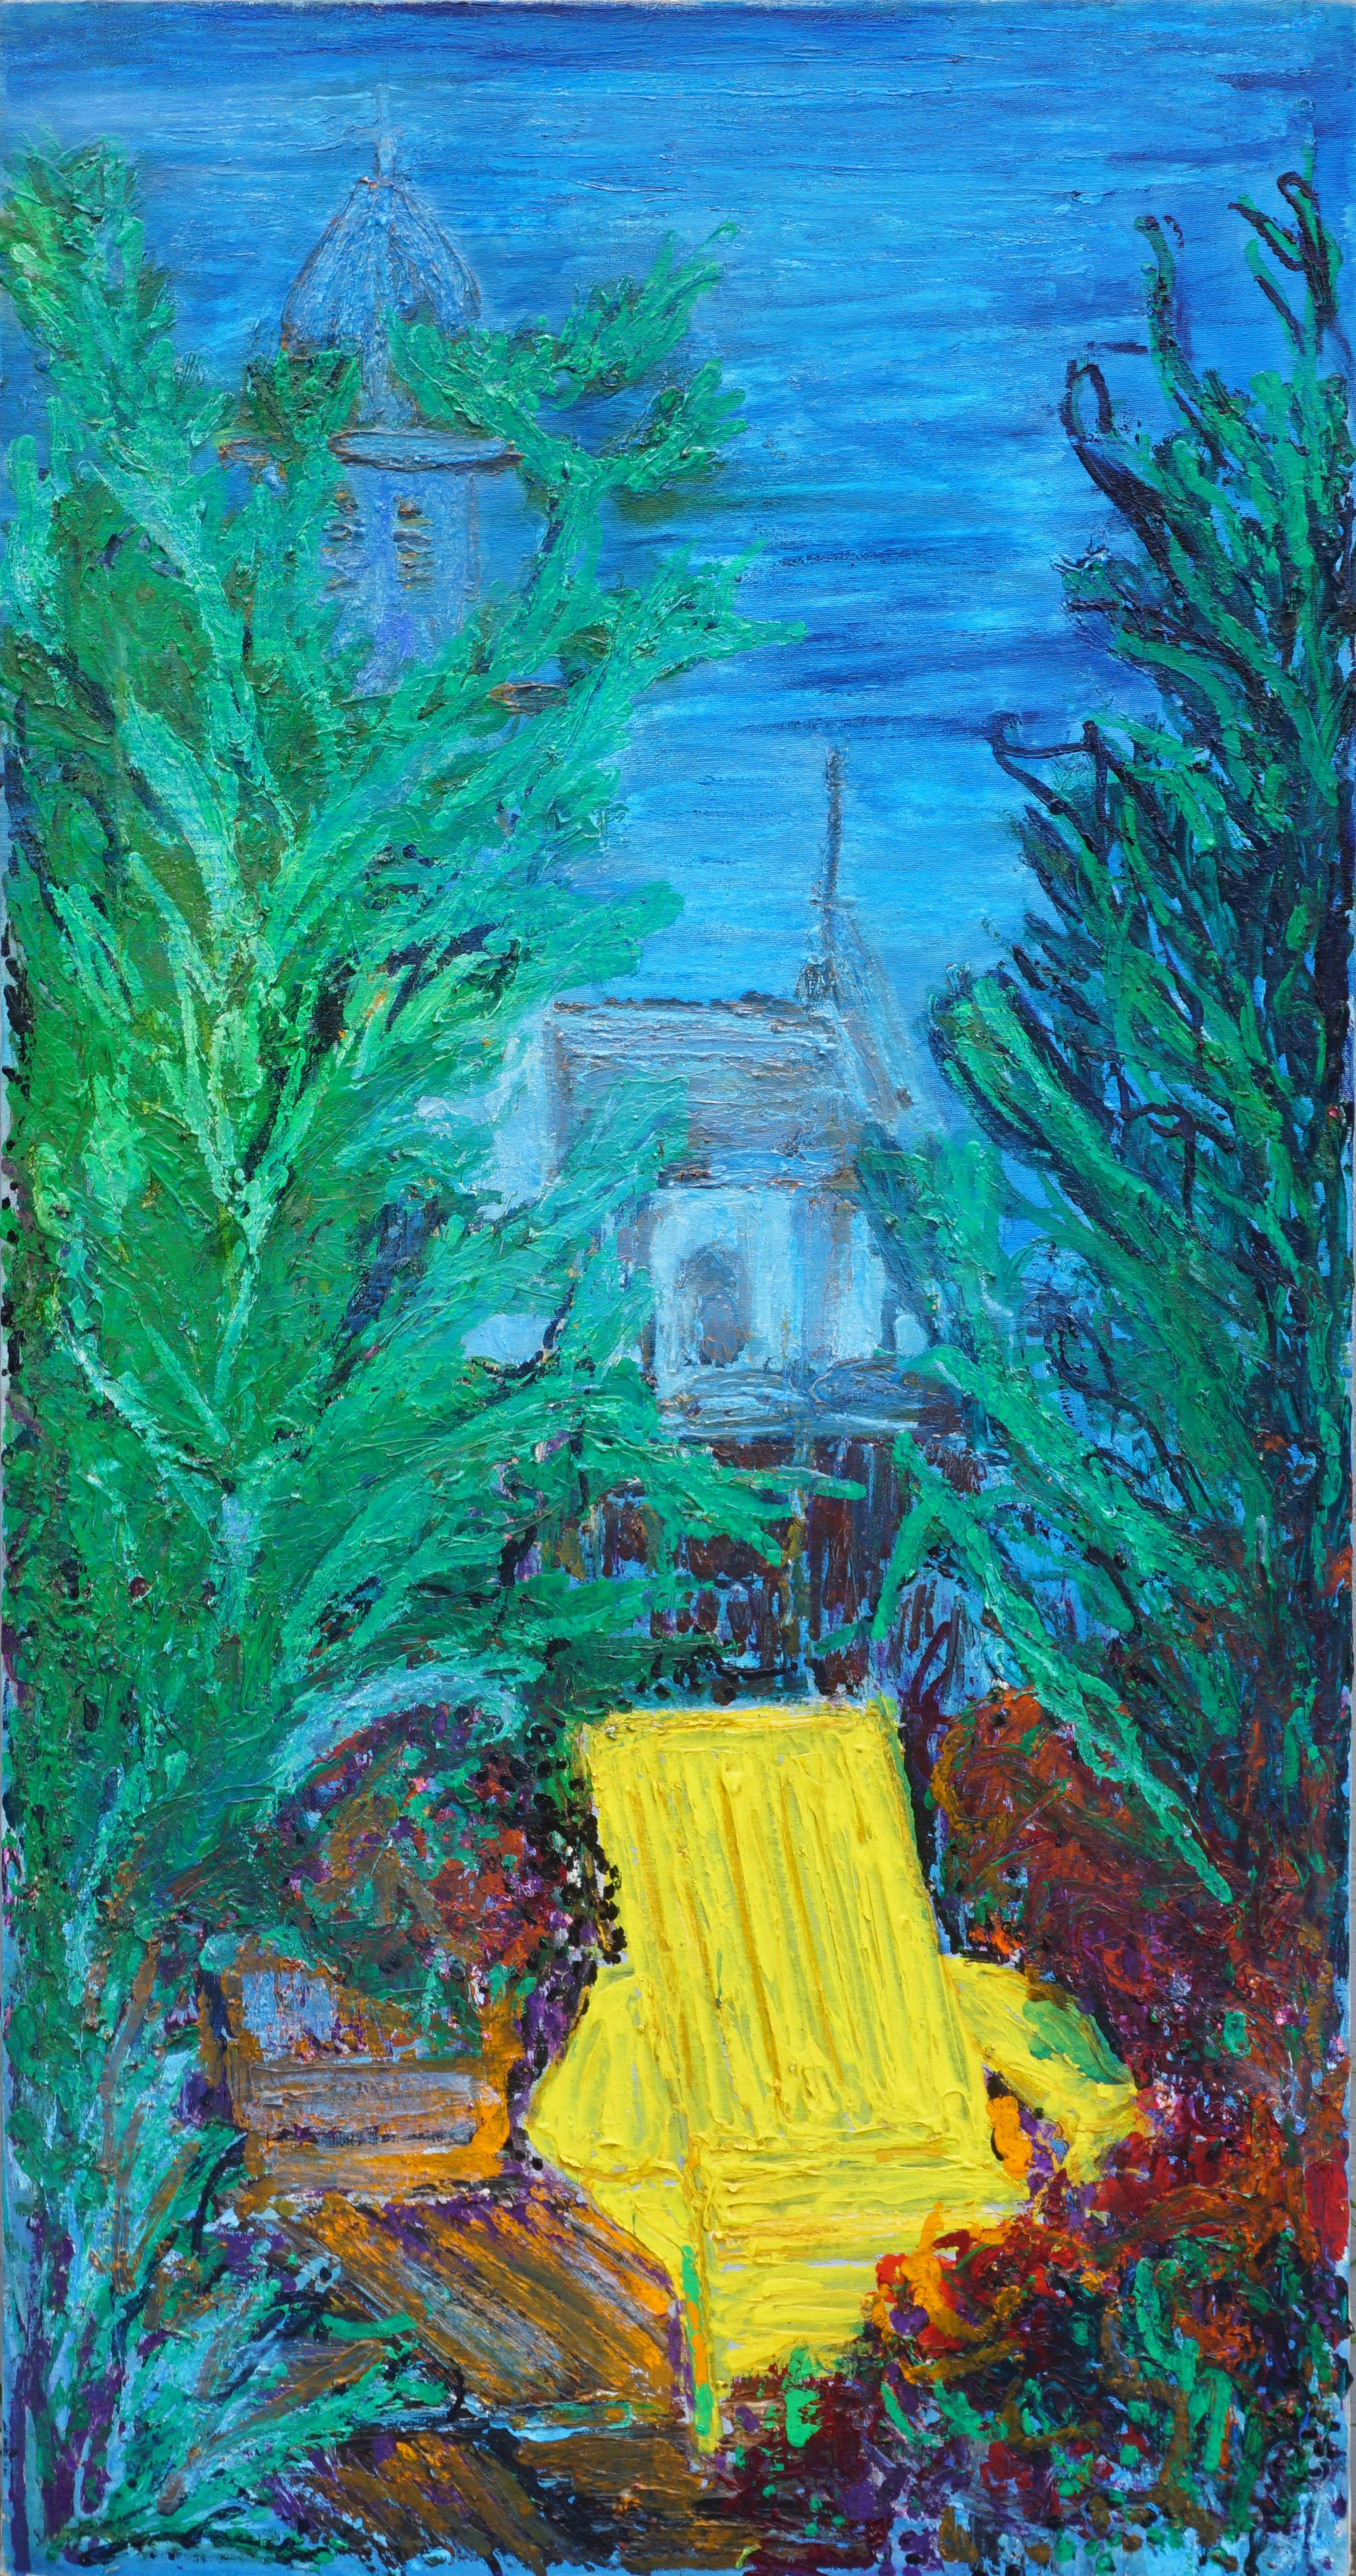 Fauvist San Francisco Nocturnal Landscape with Adirondack Chair